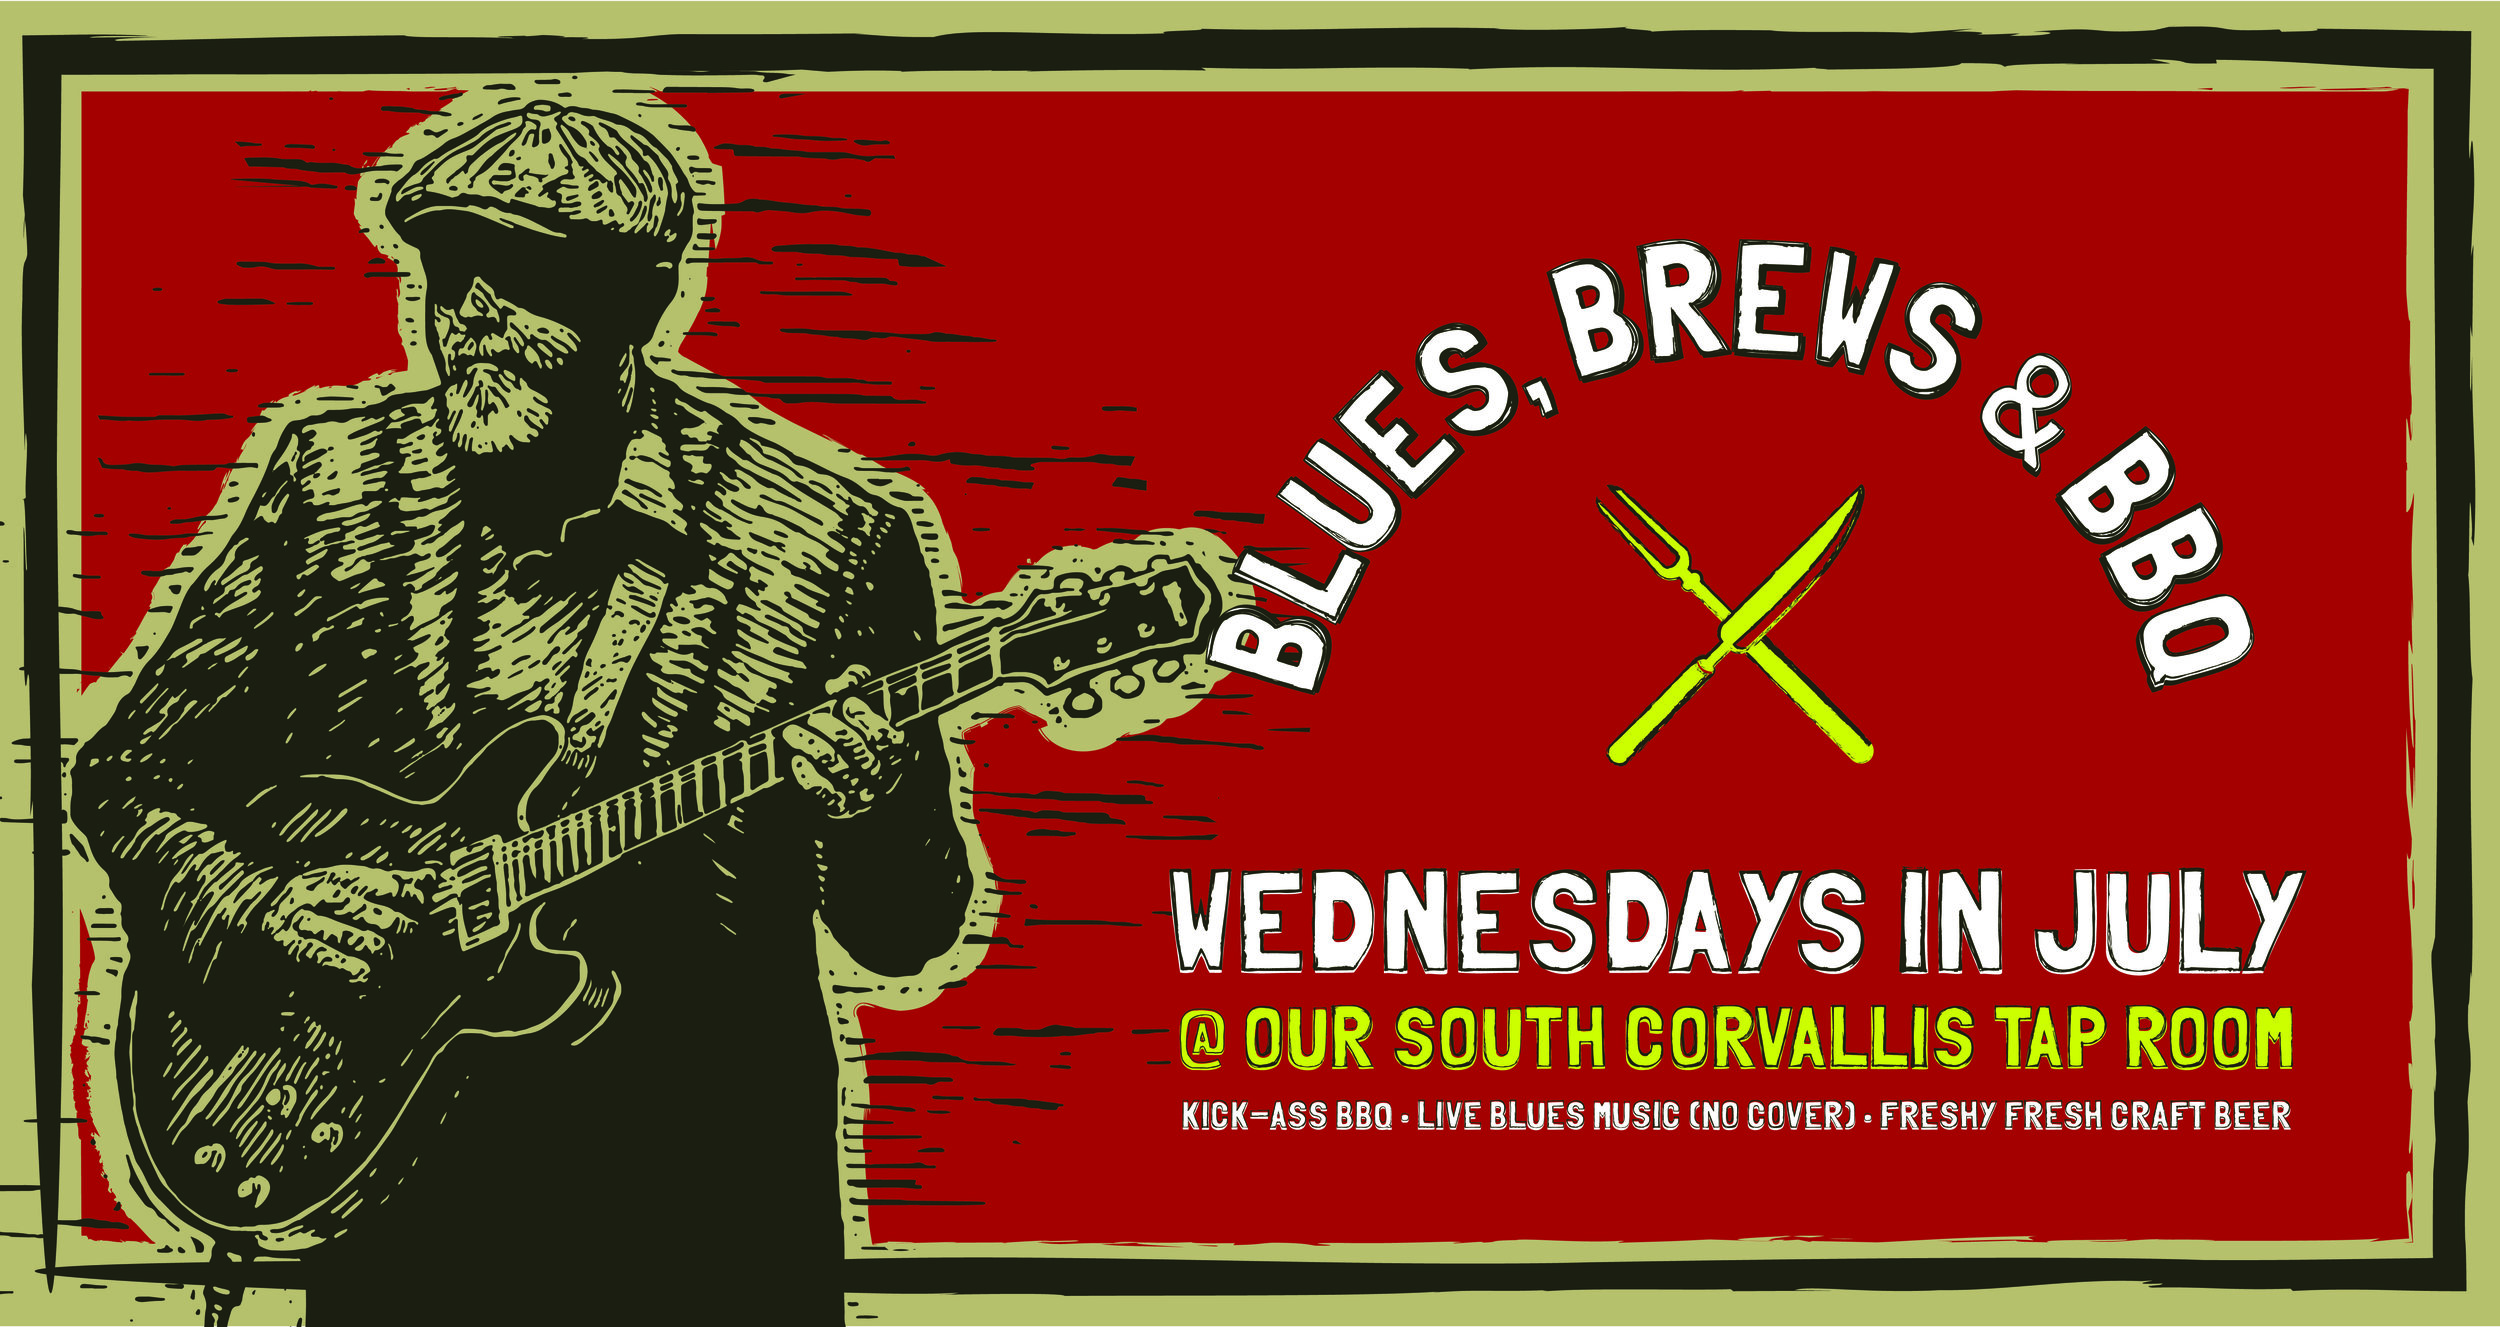 "Join us Wednesdays in July for ""Blues, Brews & BBQ"" at our Tap Room! Enjoy cover-free blues from local musicians, kick-ass BBQ specials, and freshy fresh beer brewed feet from your seat. This Wednesday we welcome Henry Cooper, and feature a special menu of Aloha Spareribs with Shoyu Smoked Pork and a side of Mac Salad."